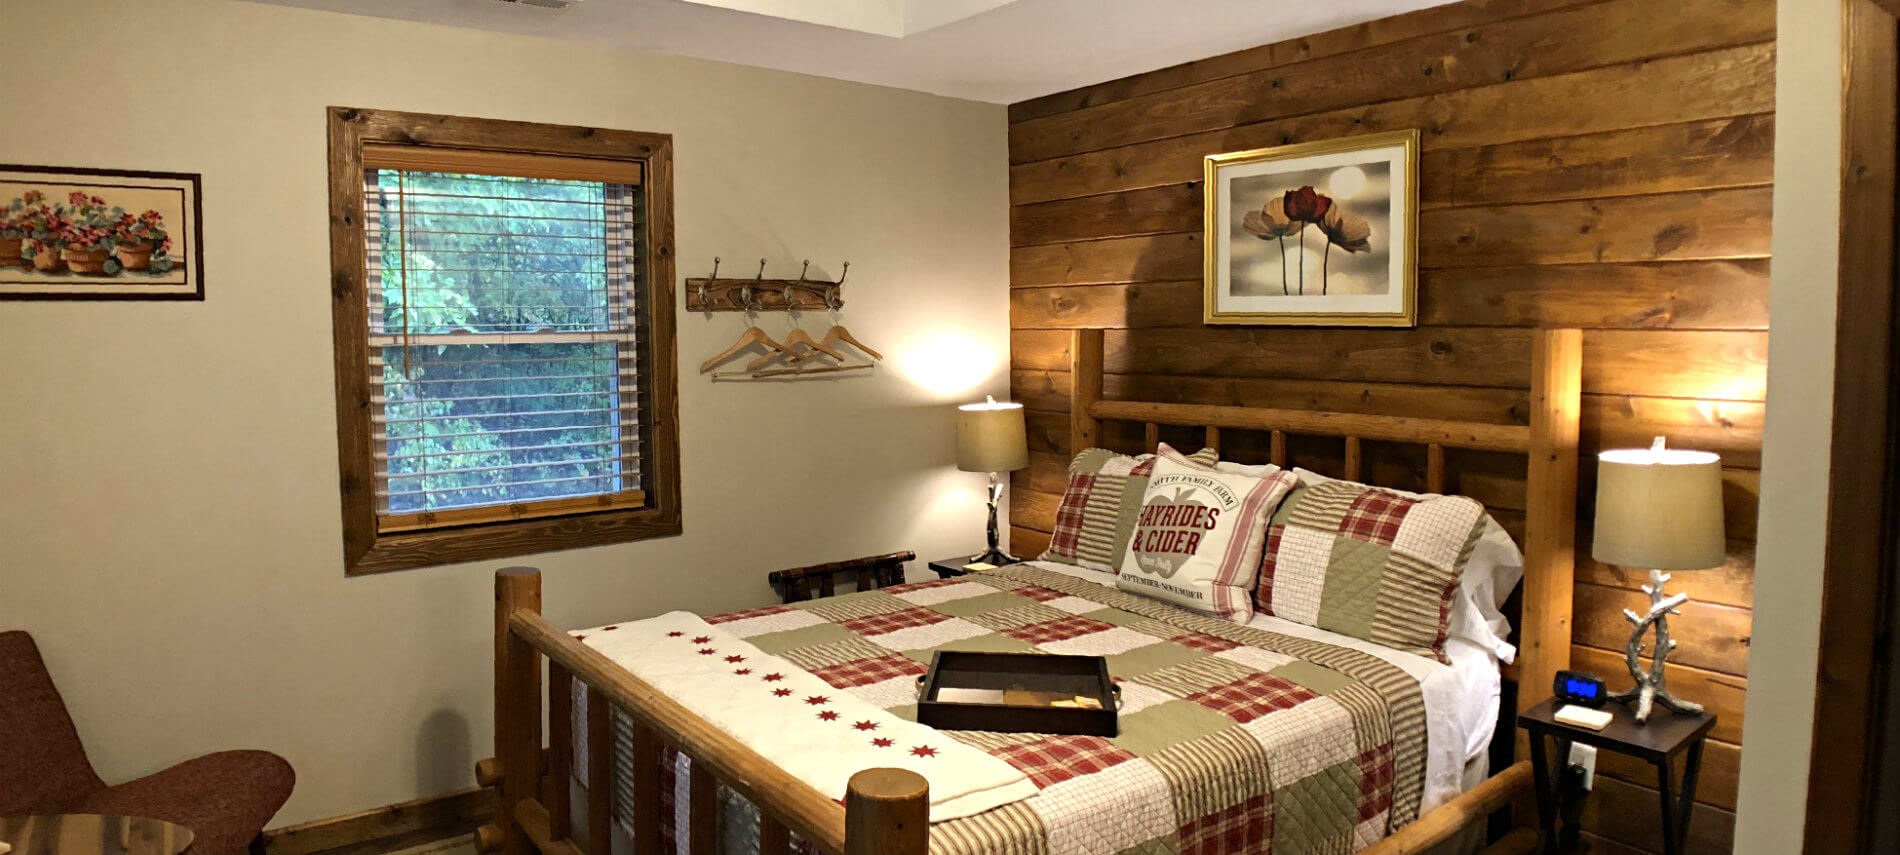 Willow guest room with a plank wall, rustic bed with plaid quilt, and small window